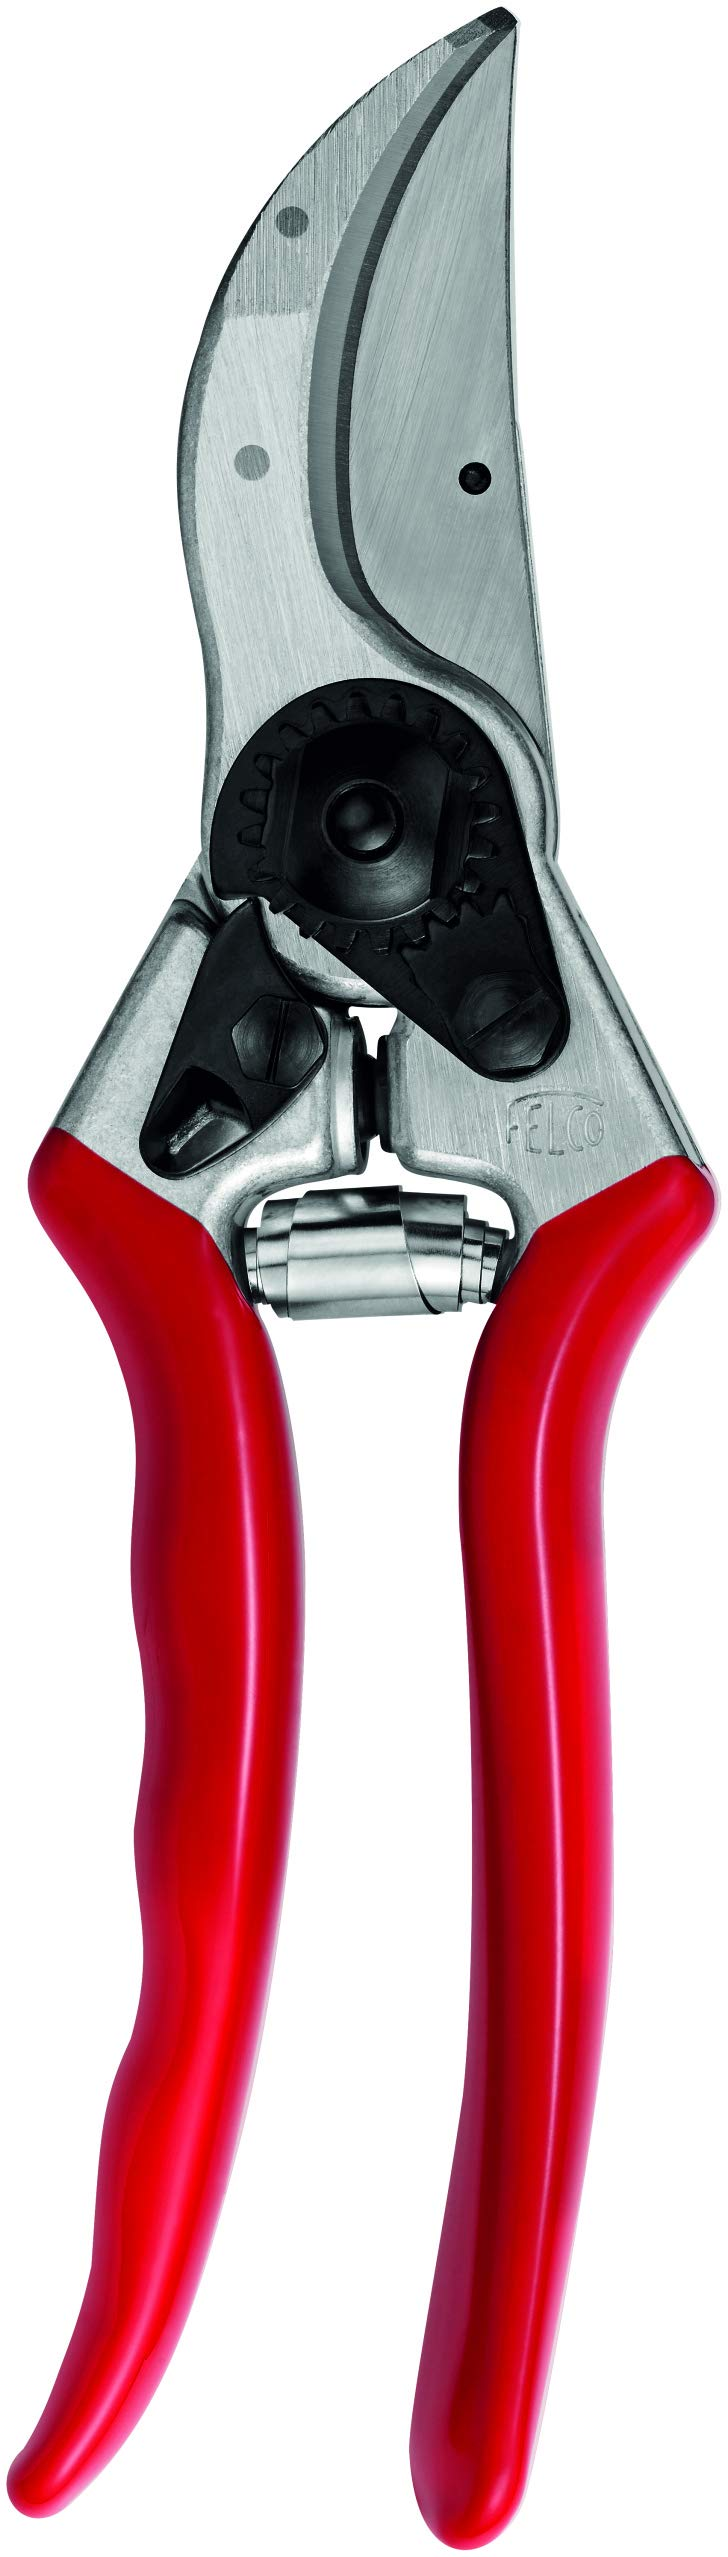 Felco F-2 068780 Classic Manual Hand Pruner by FELCO